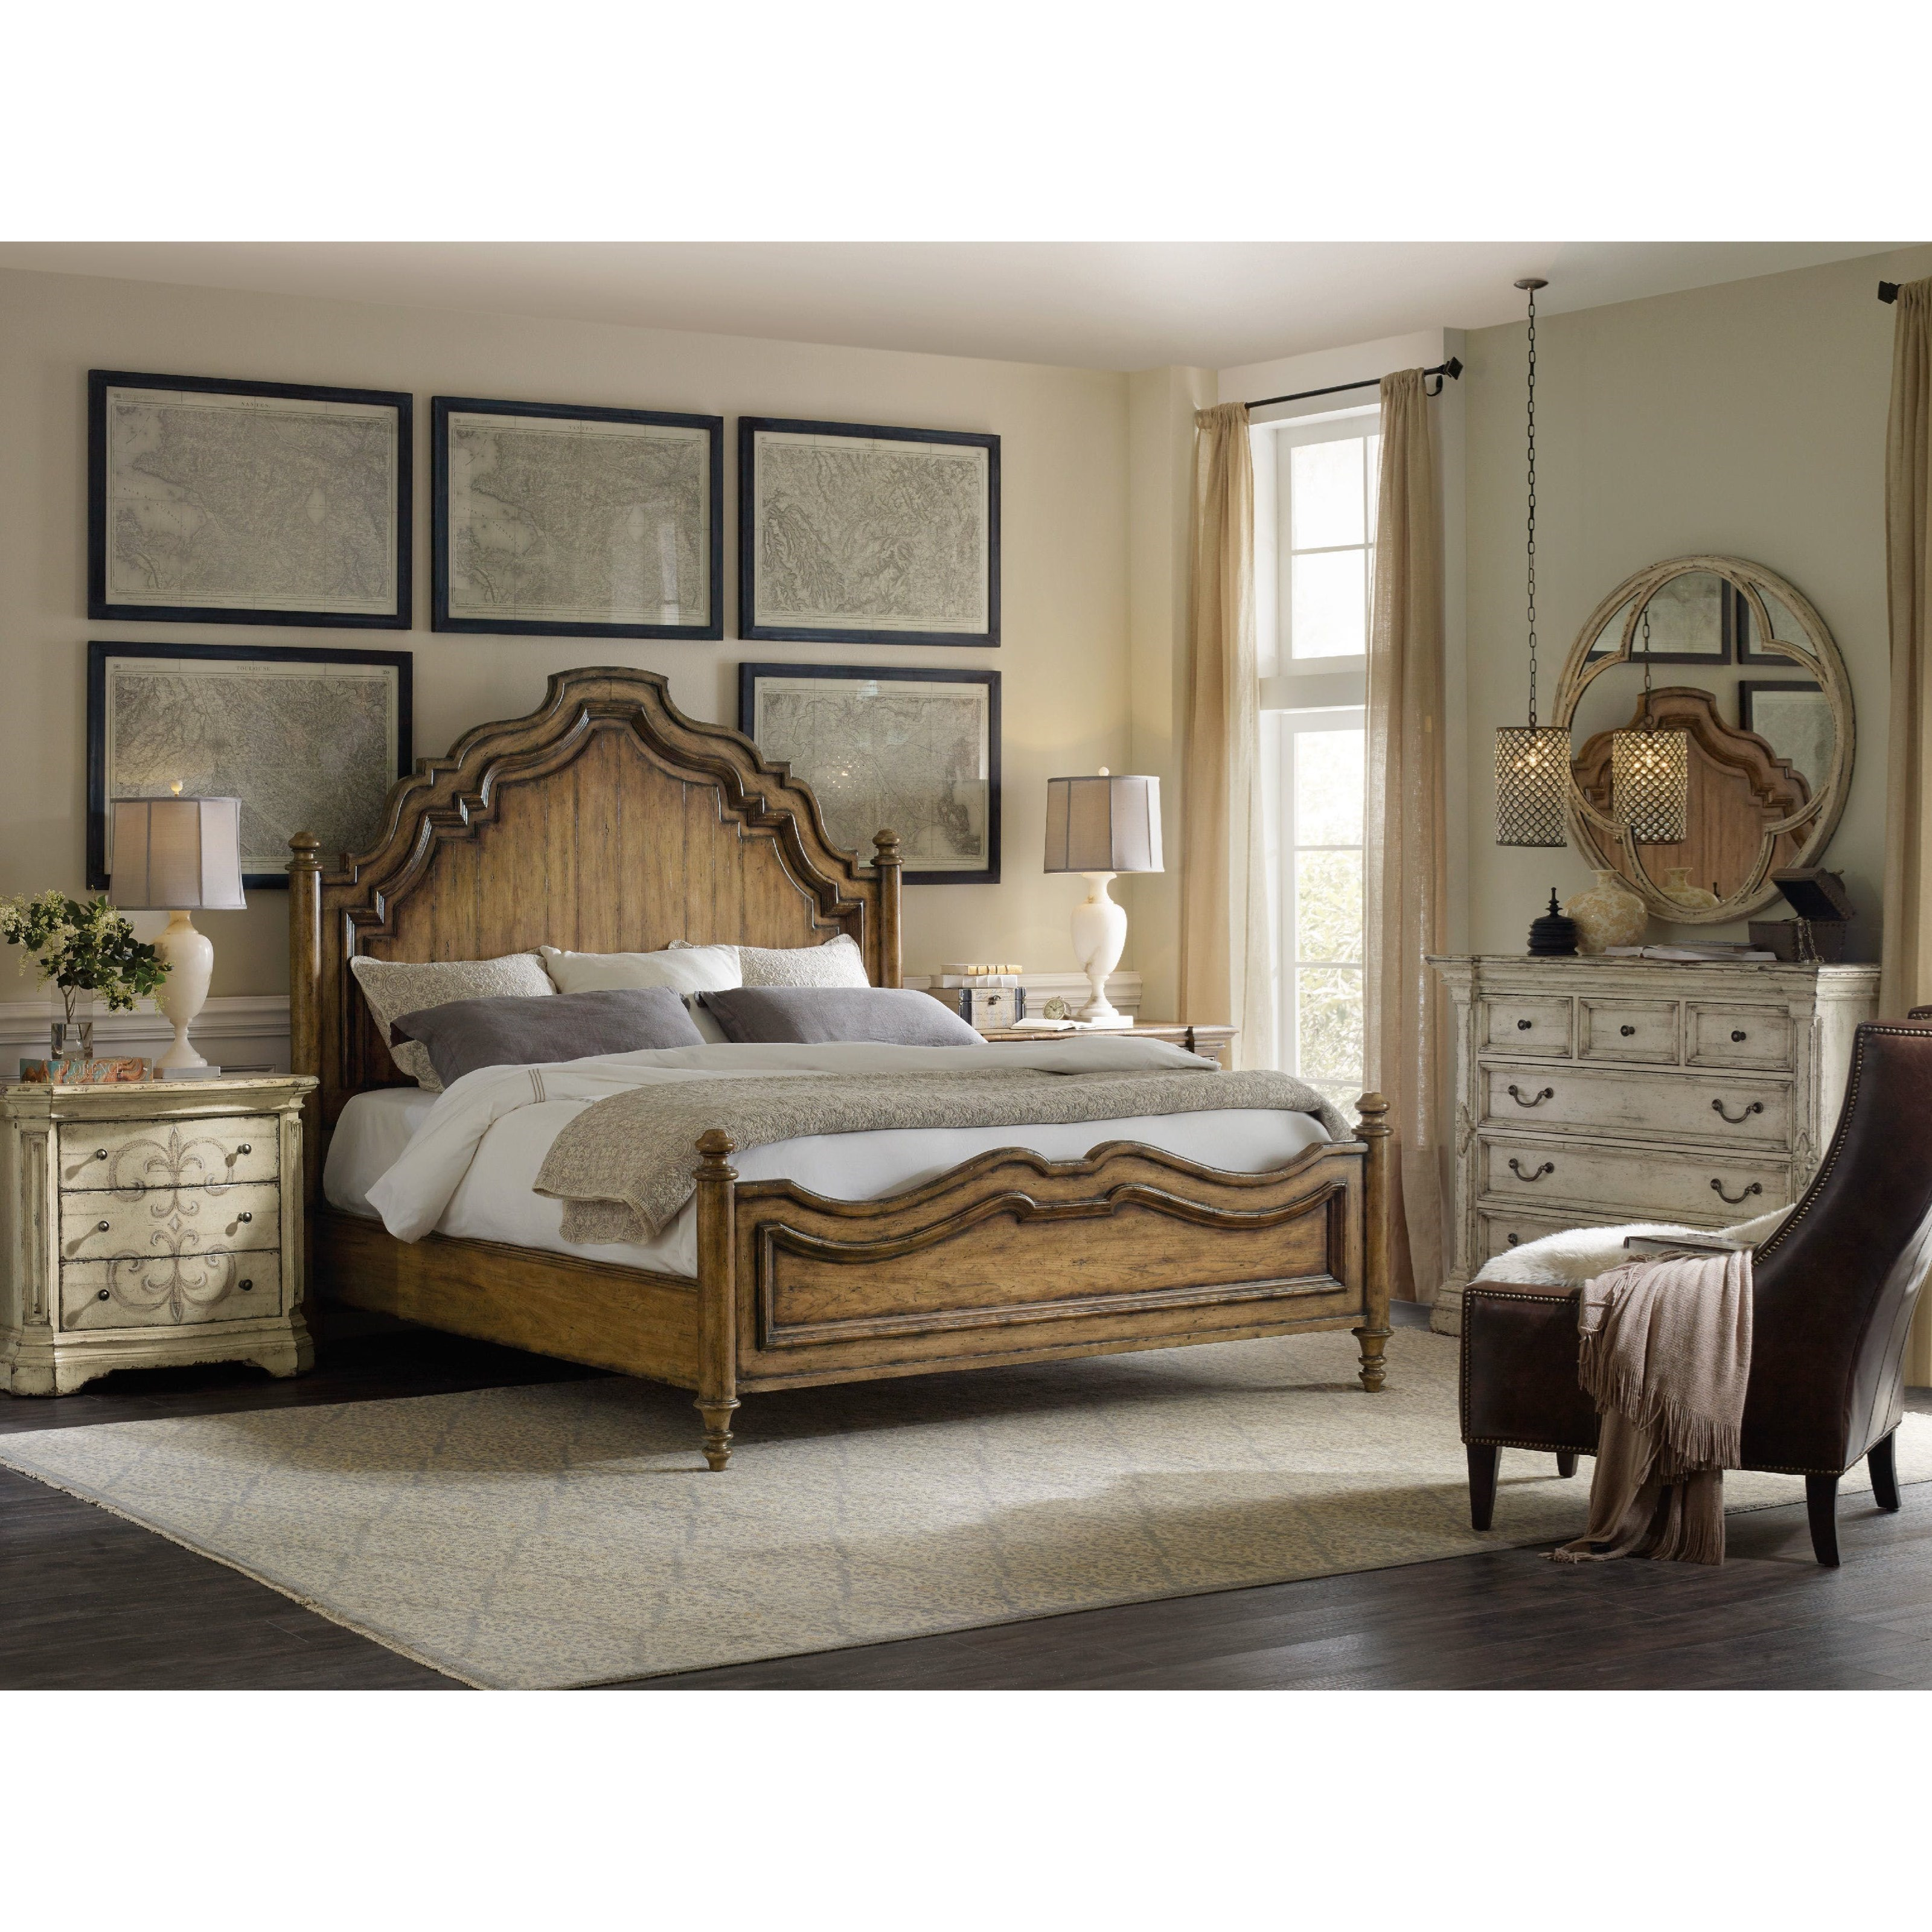 Hooker furniture auberose king bedroom group reeds for Bedroom furniture groups